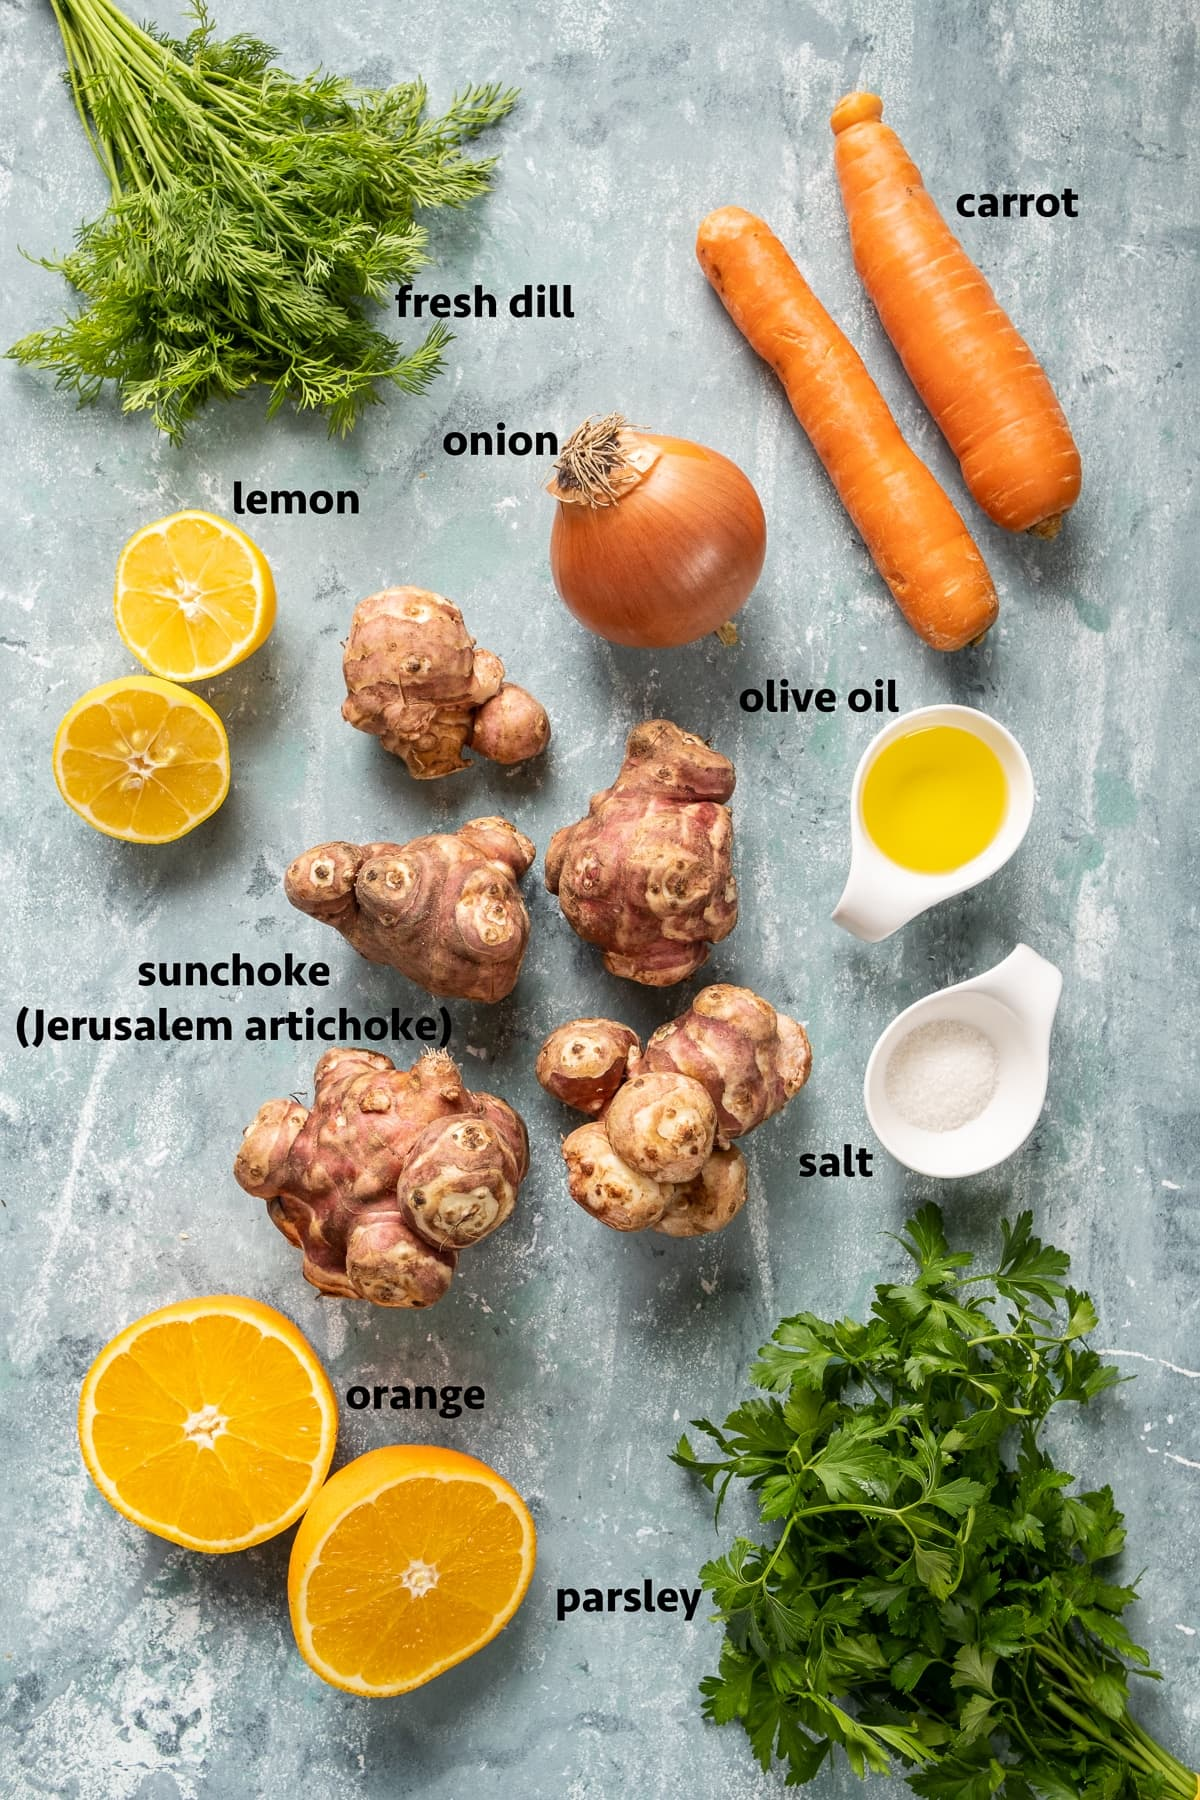 Sunchokes, carrots, onion, halved lemon, halved orange, olive oil, salt, fresh dill and fresh parsley on a light colored background.